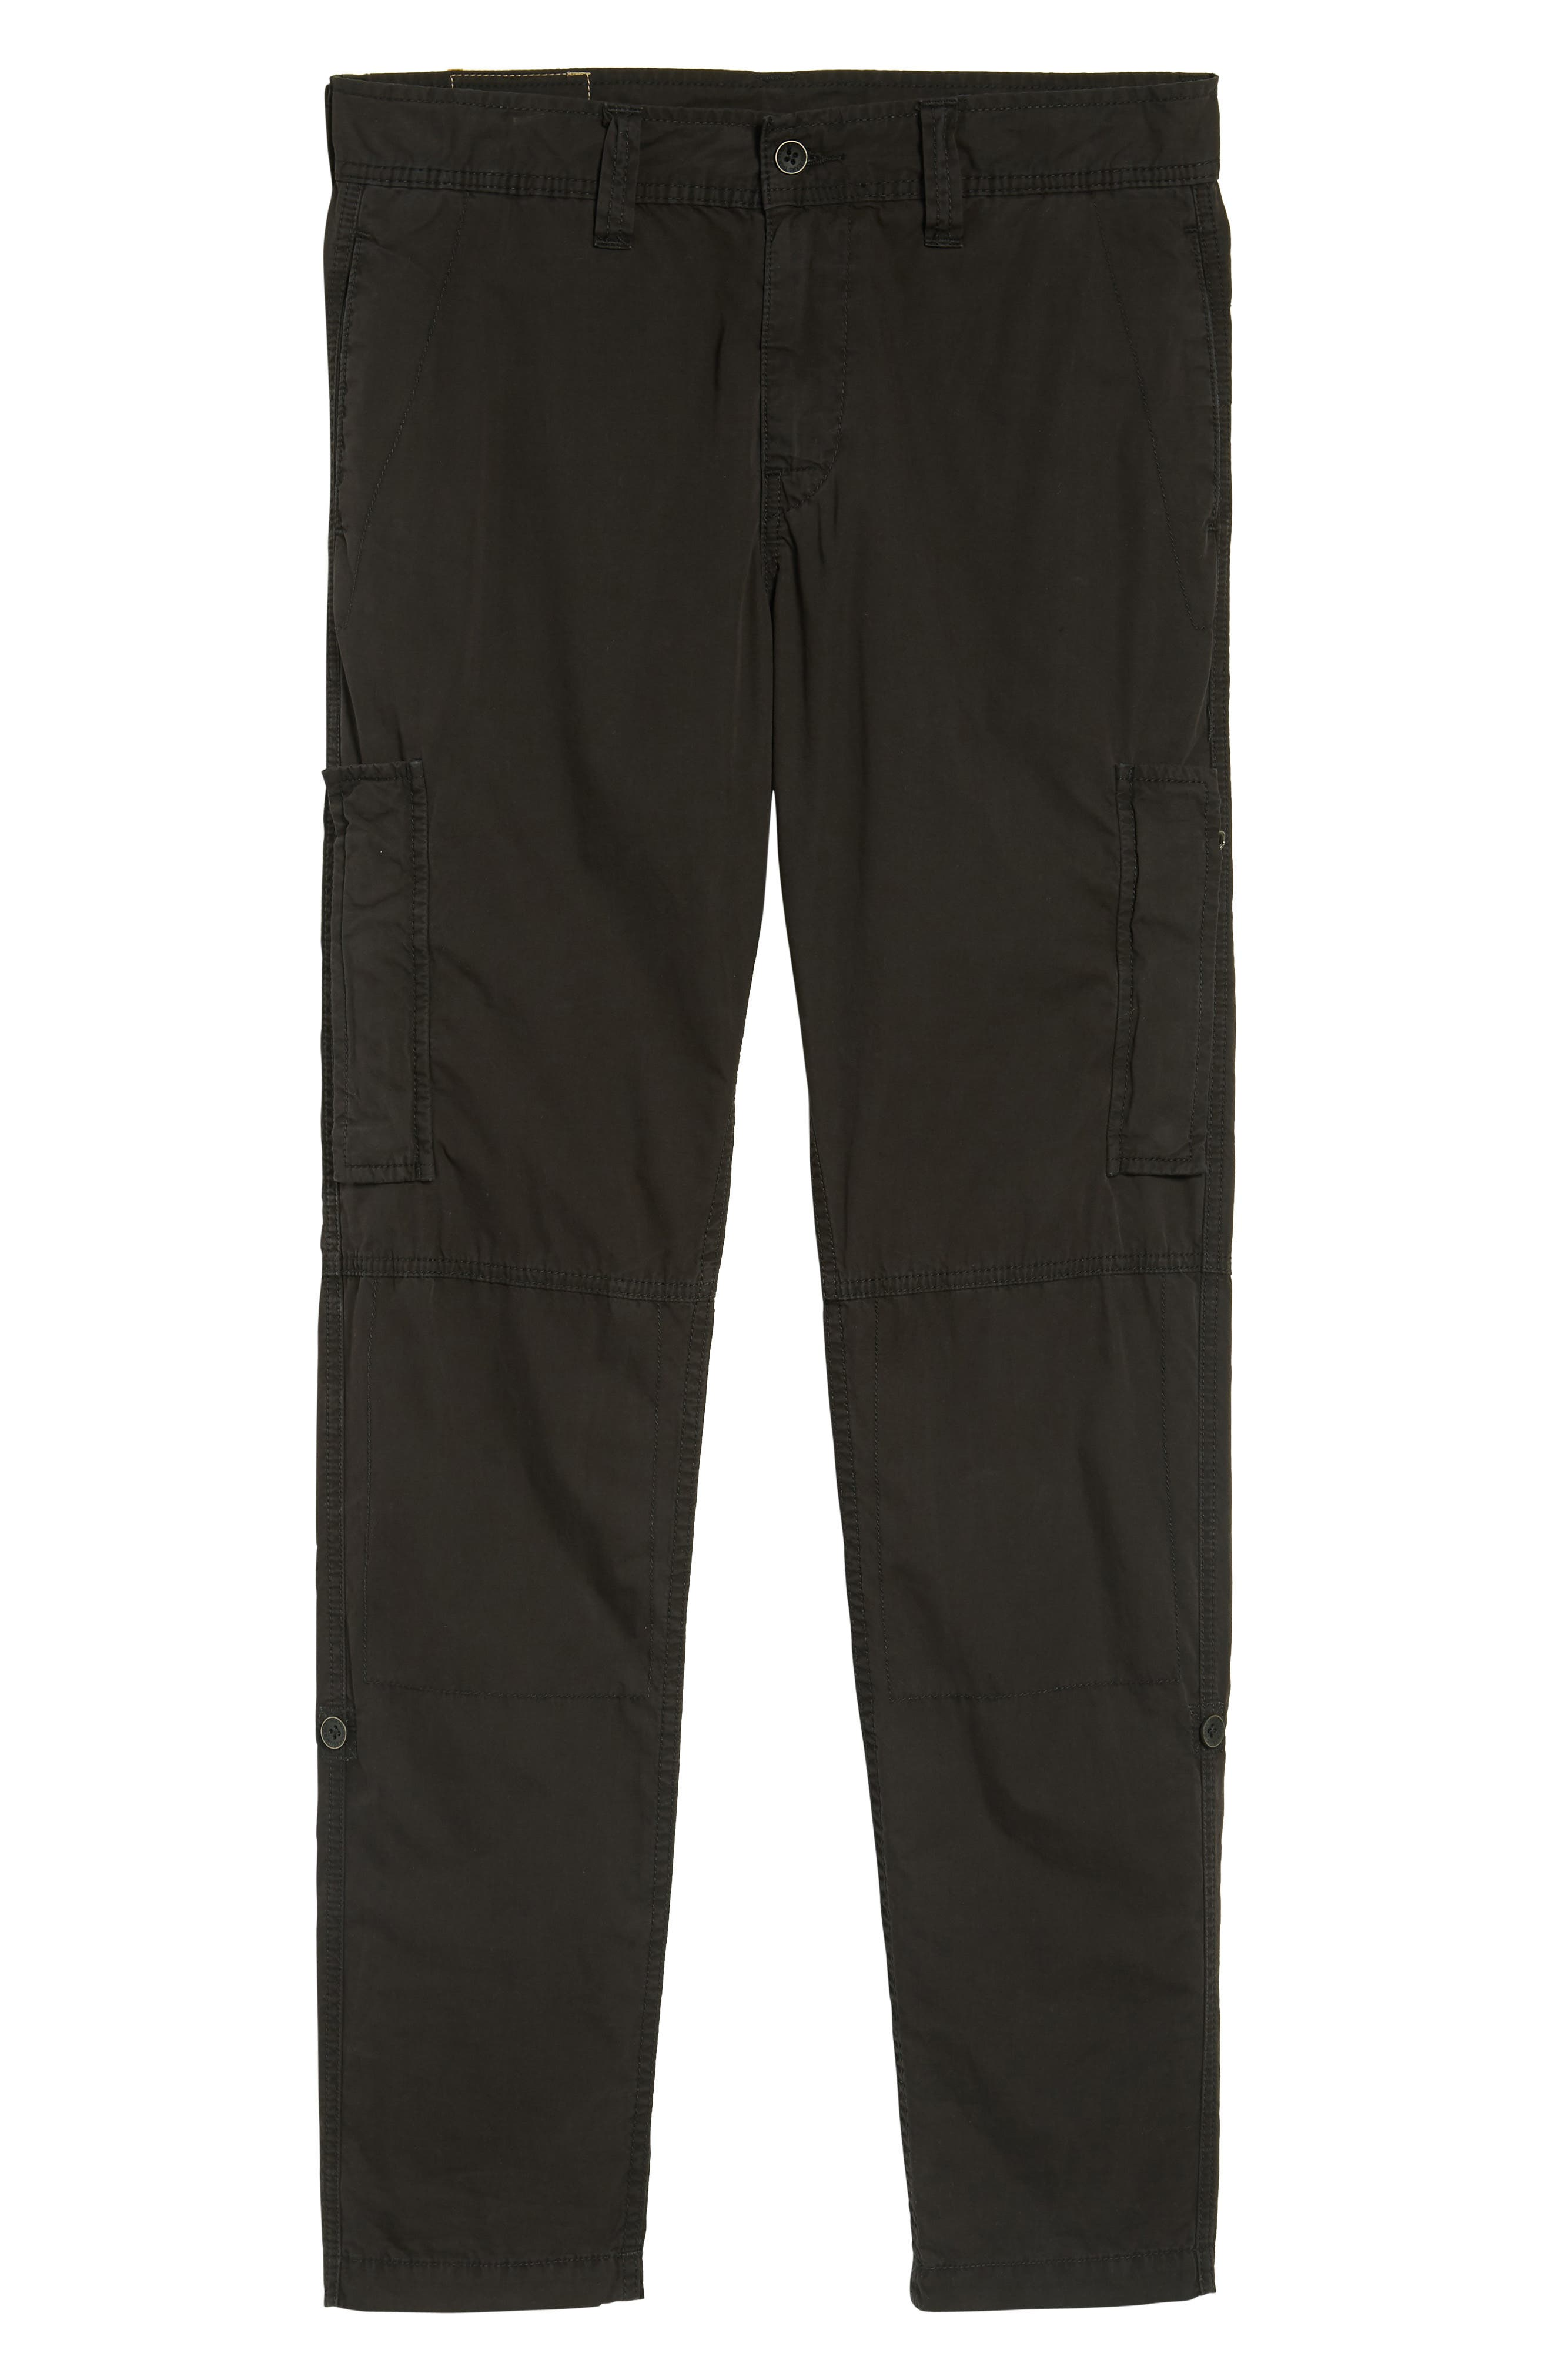 Officer Field Pants,                             Alternate thumbnail 6, color,                             001